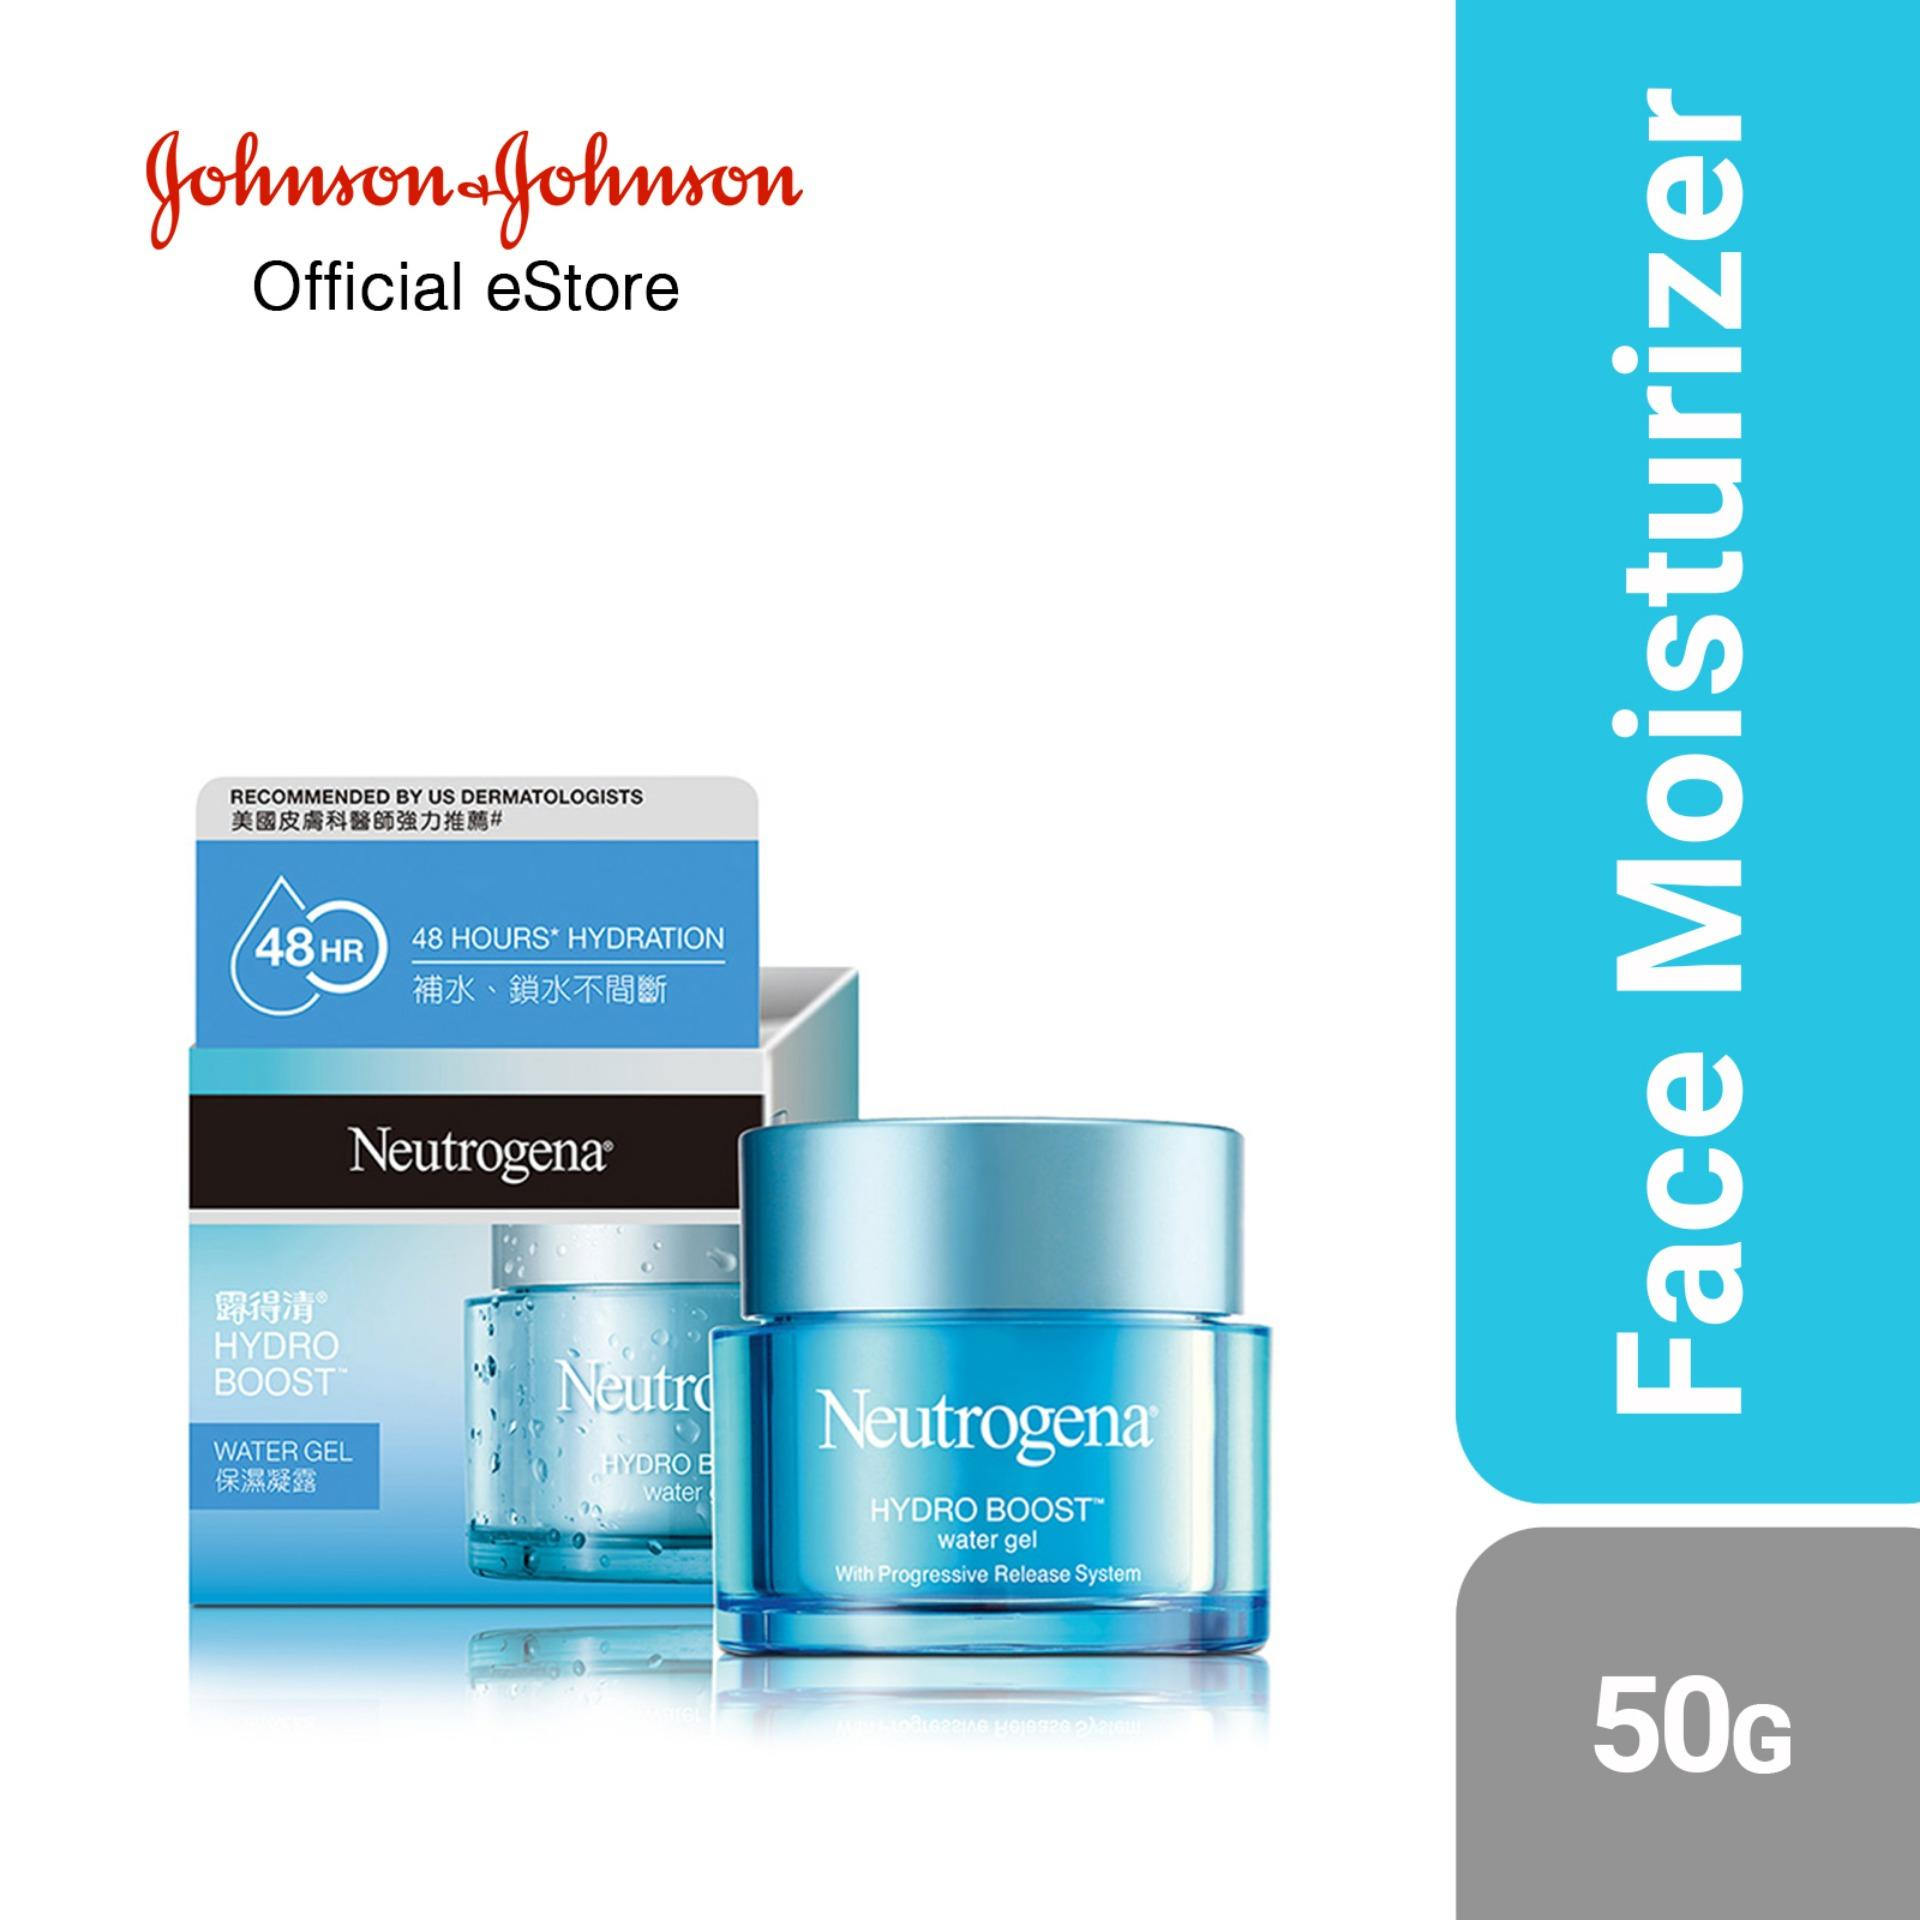 Neutrogena Hydro Boost Water Gel 50g By Johnson & Johnson Official Store.